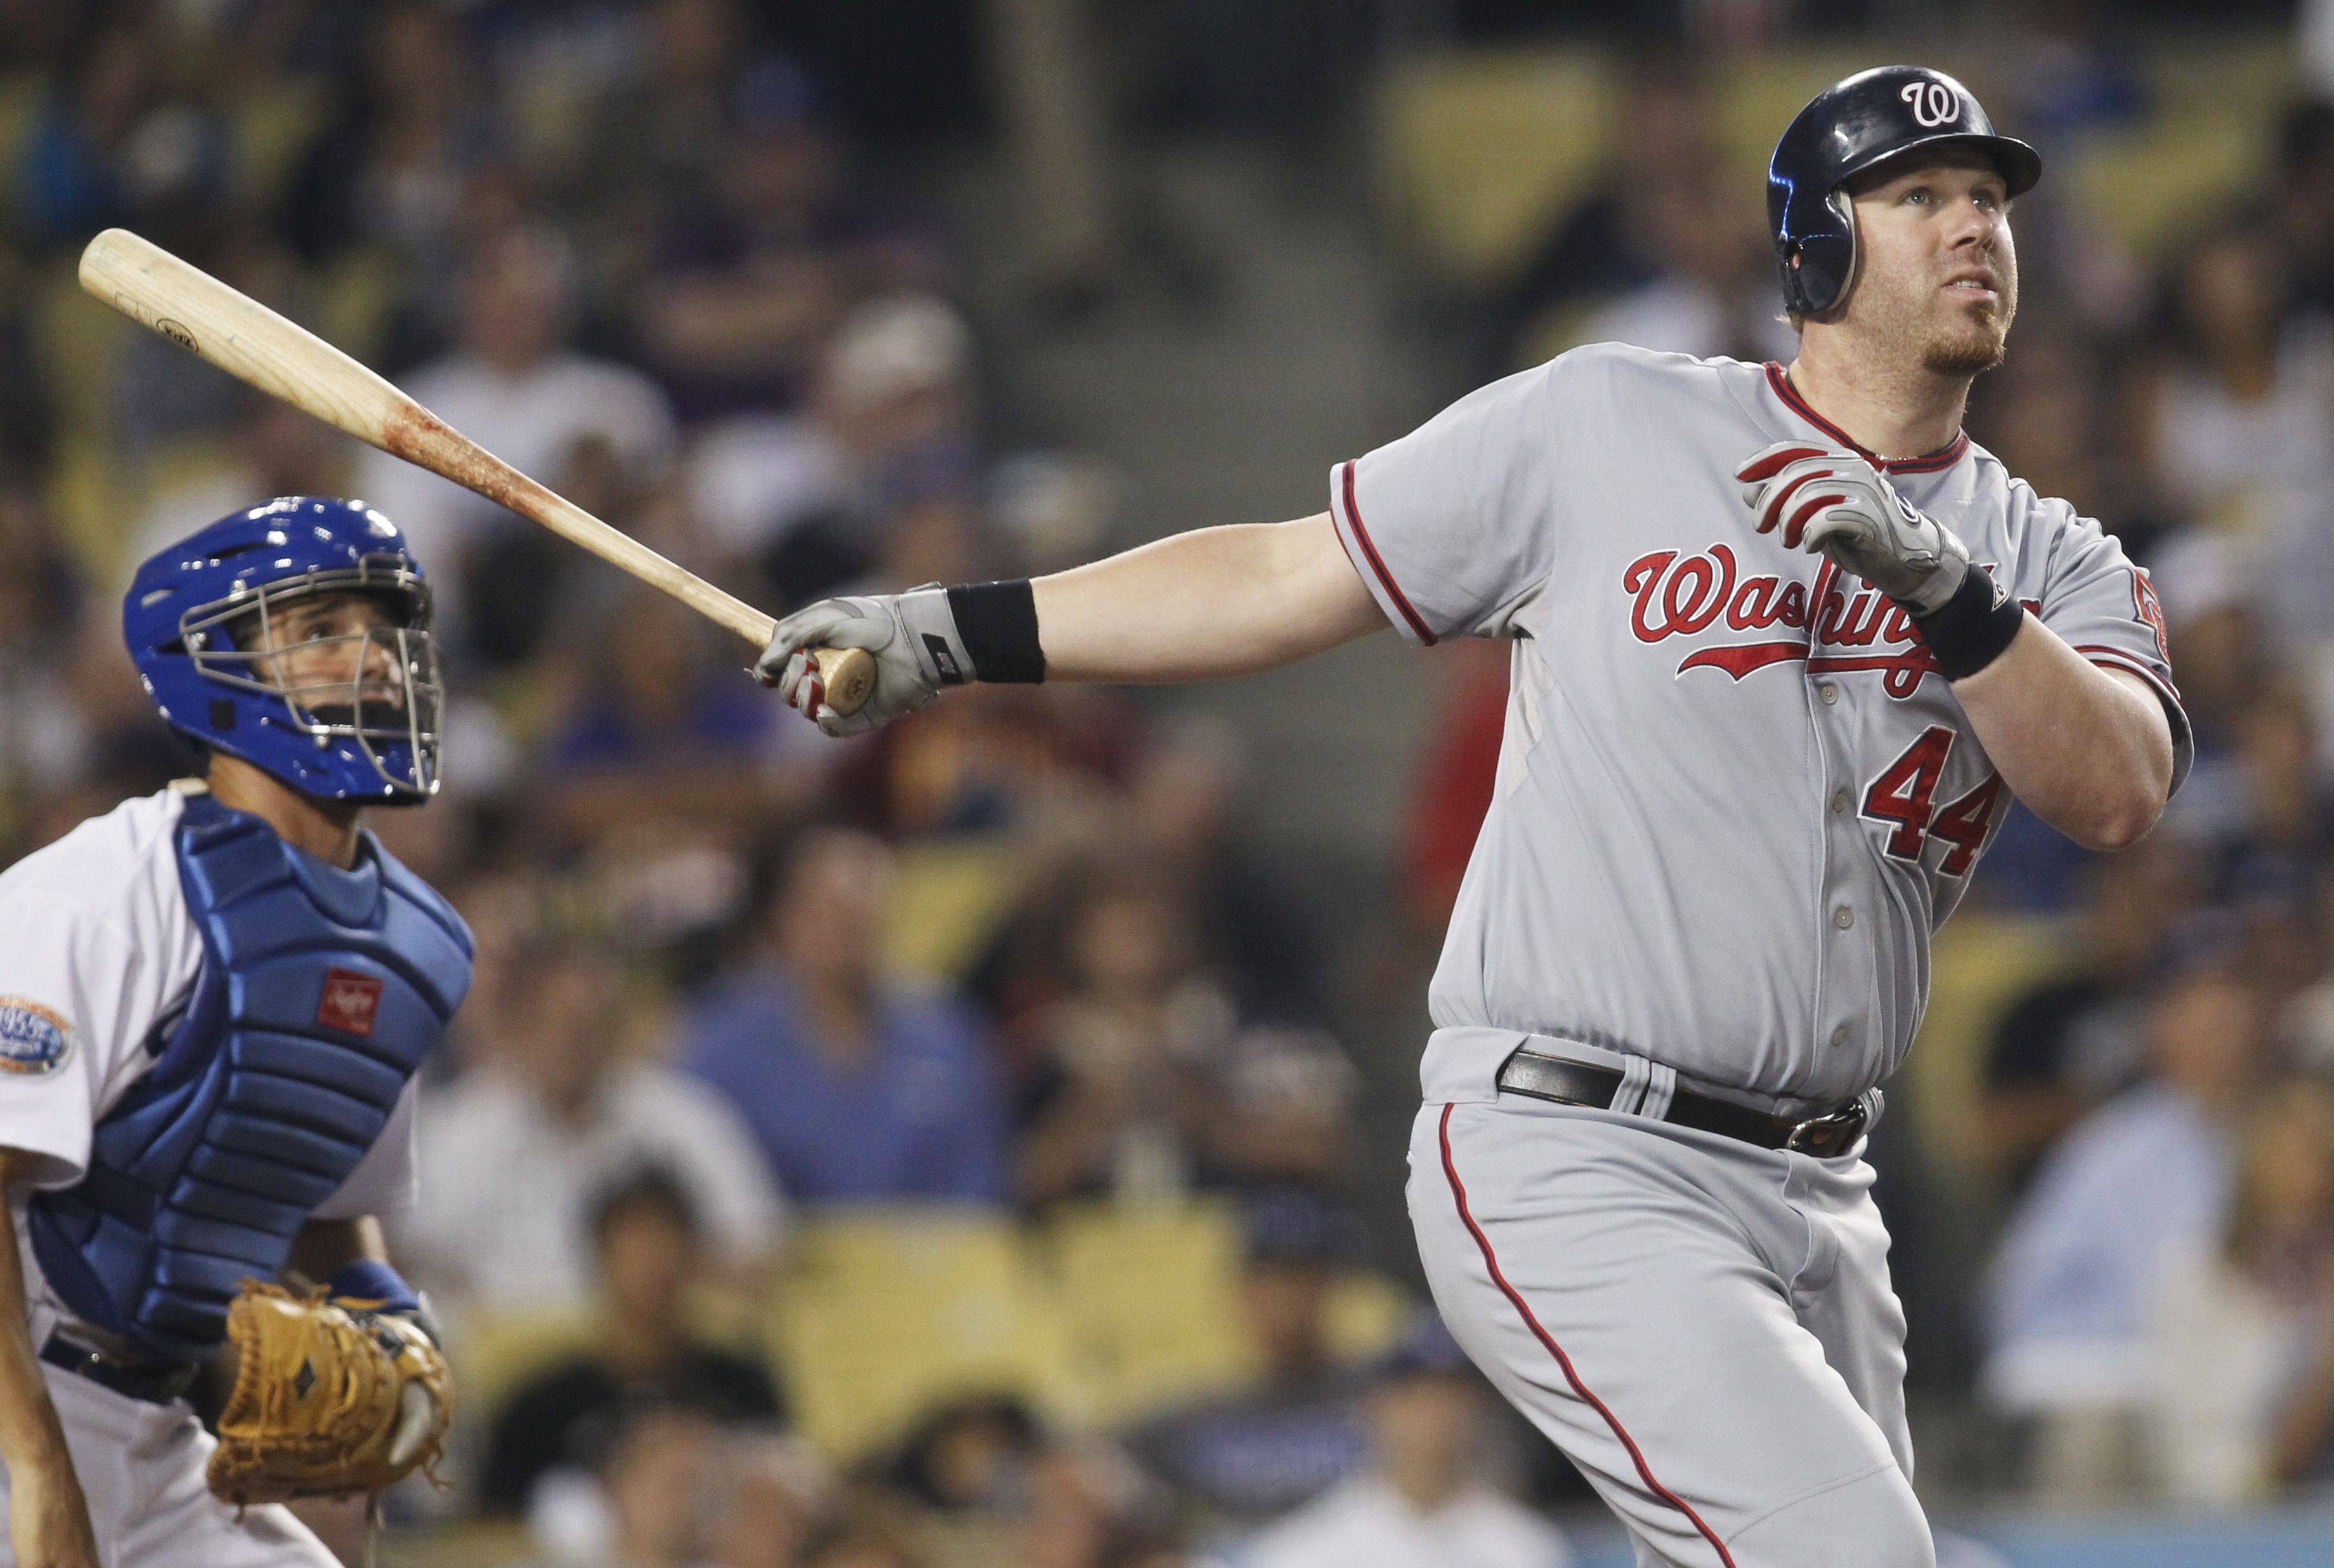 Washington Nationals' Adam Dunn, right, hits a three-run home run to also drive in teammates Ryan Zimmerman and Ian Desmond as Los Angeles Dodgers catcher Brad Ausmus, left, looks on.